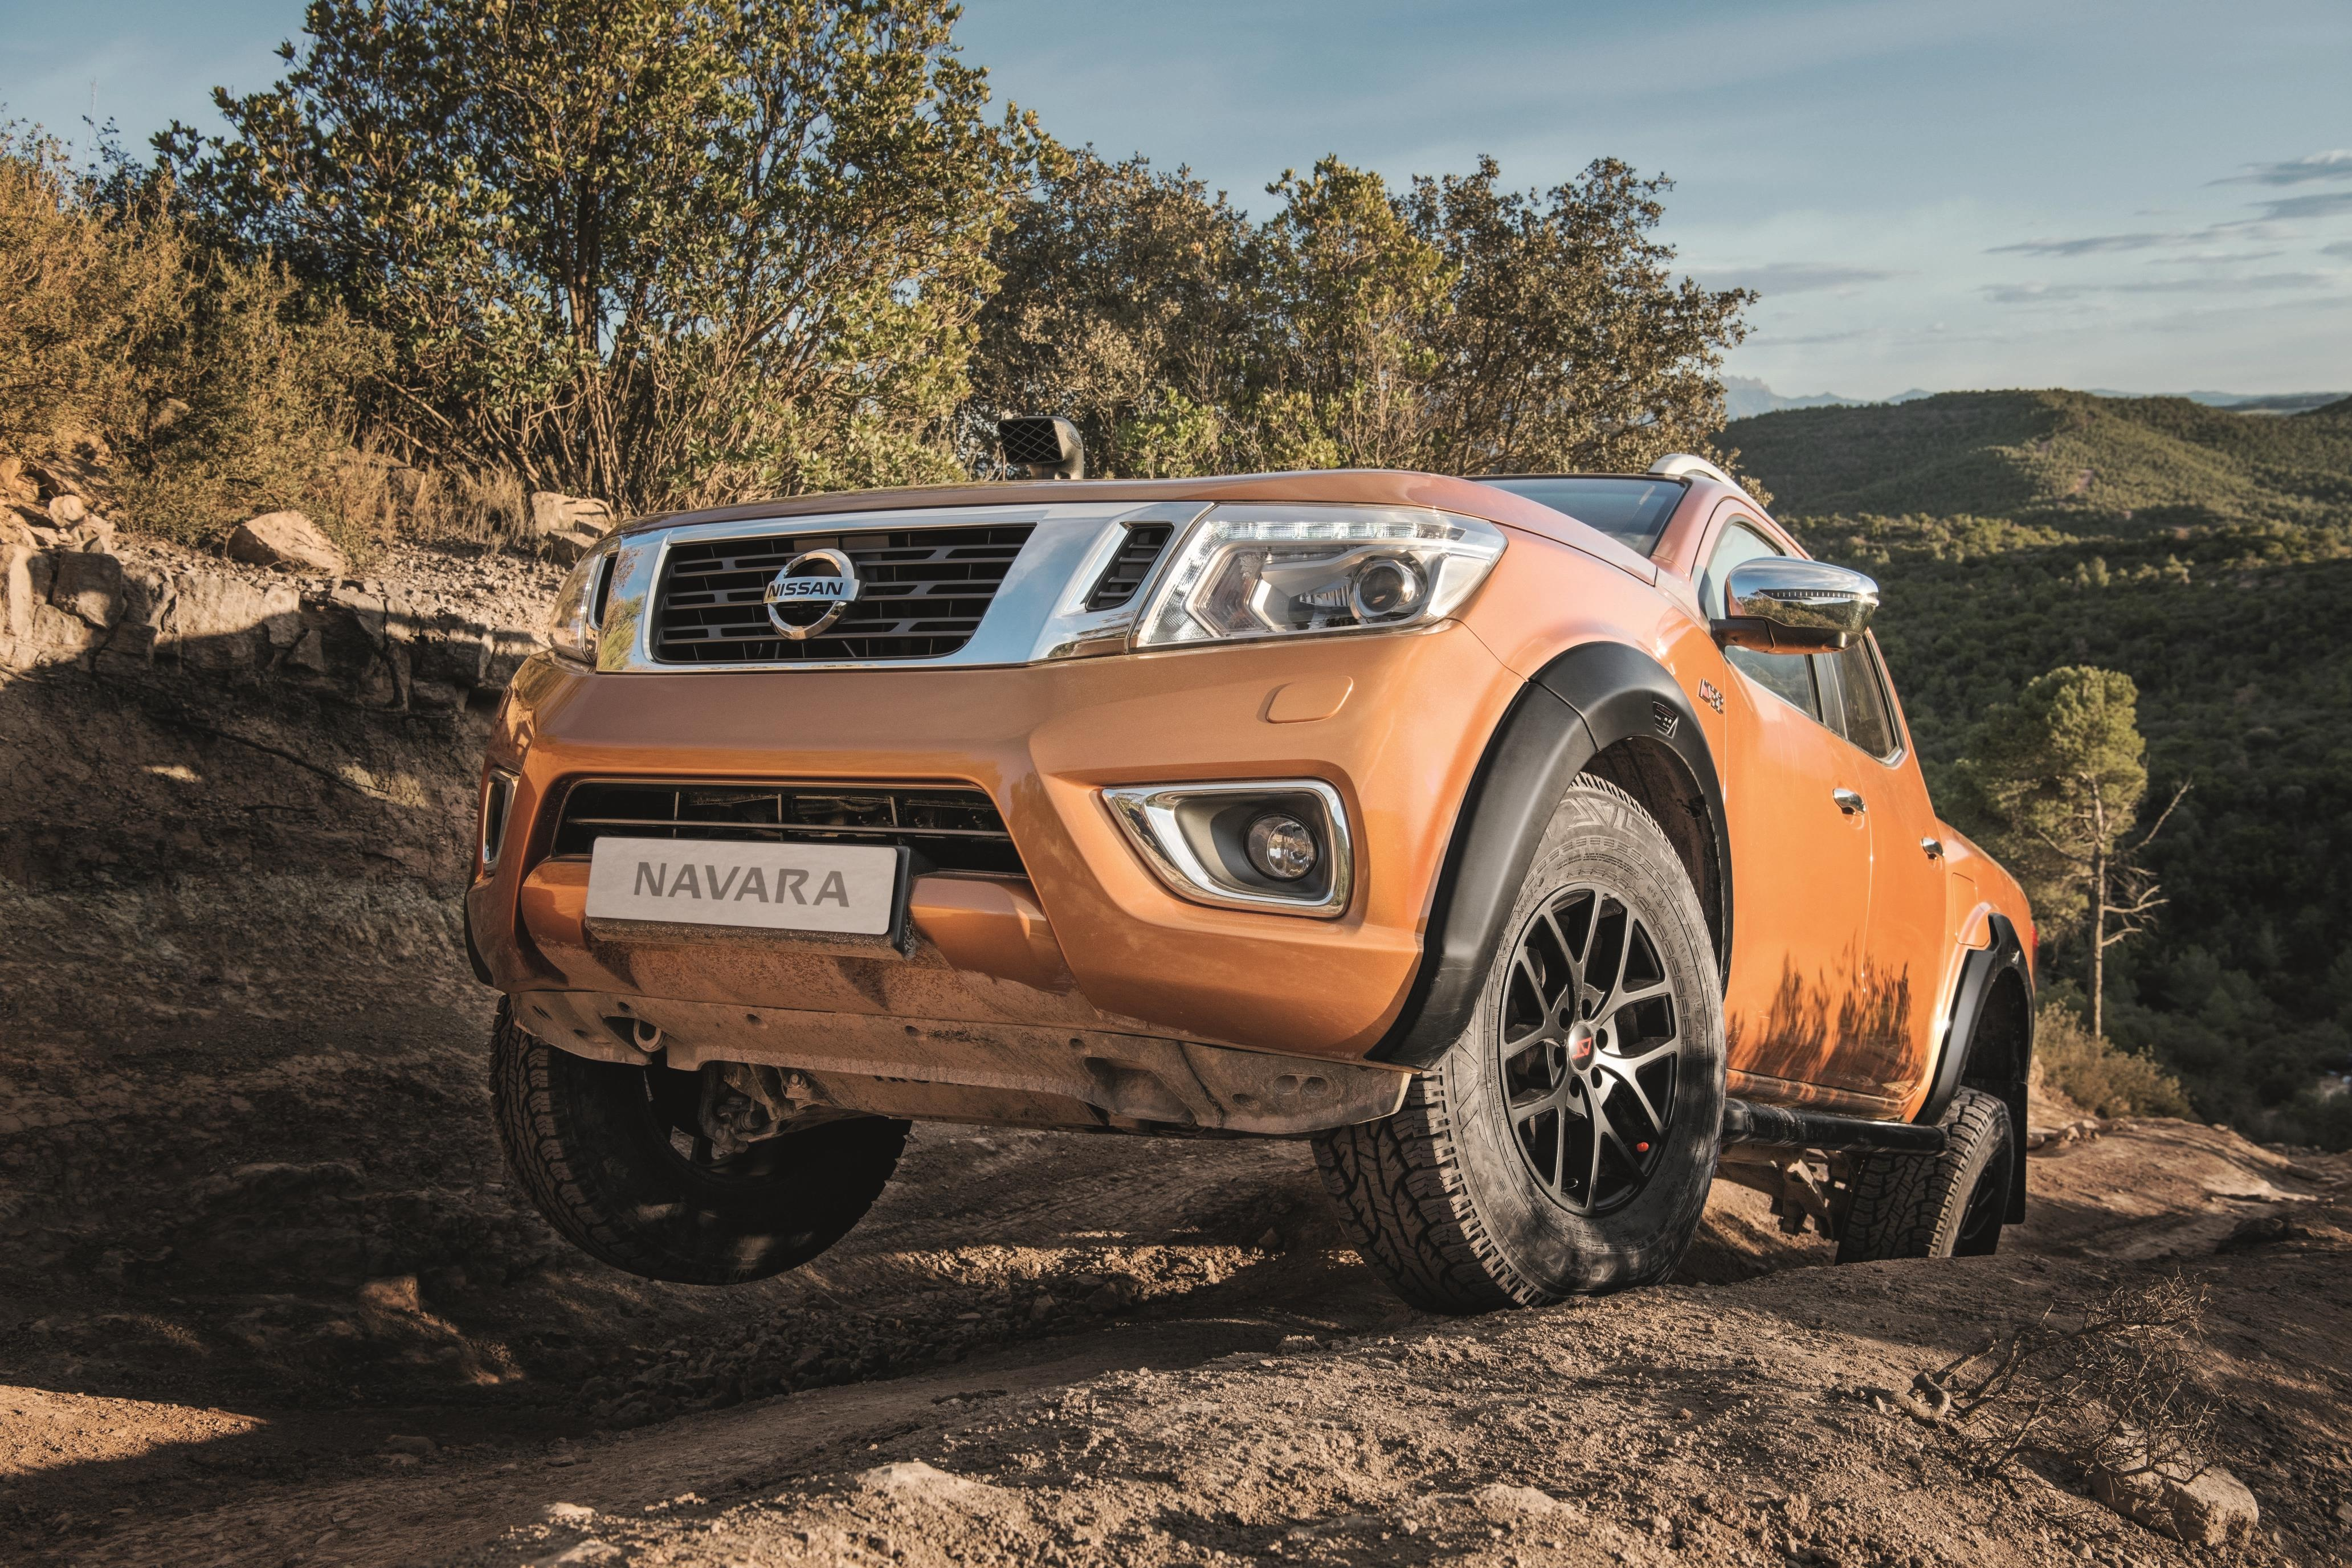 The Navara is at its most aggressive in Arctic Trucks layout